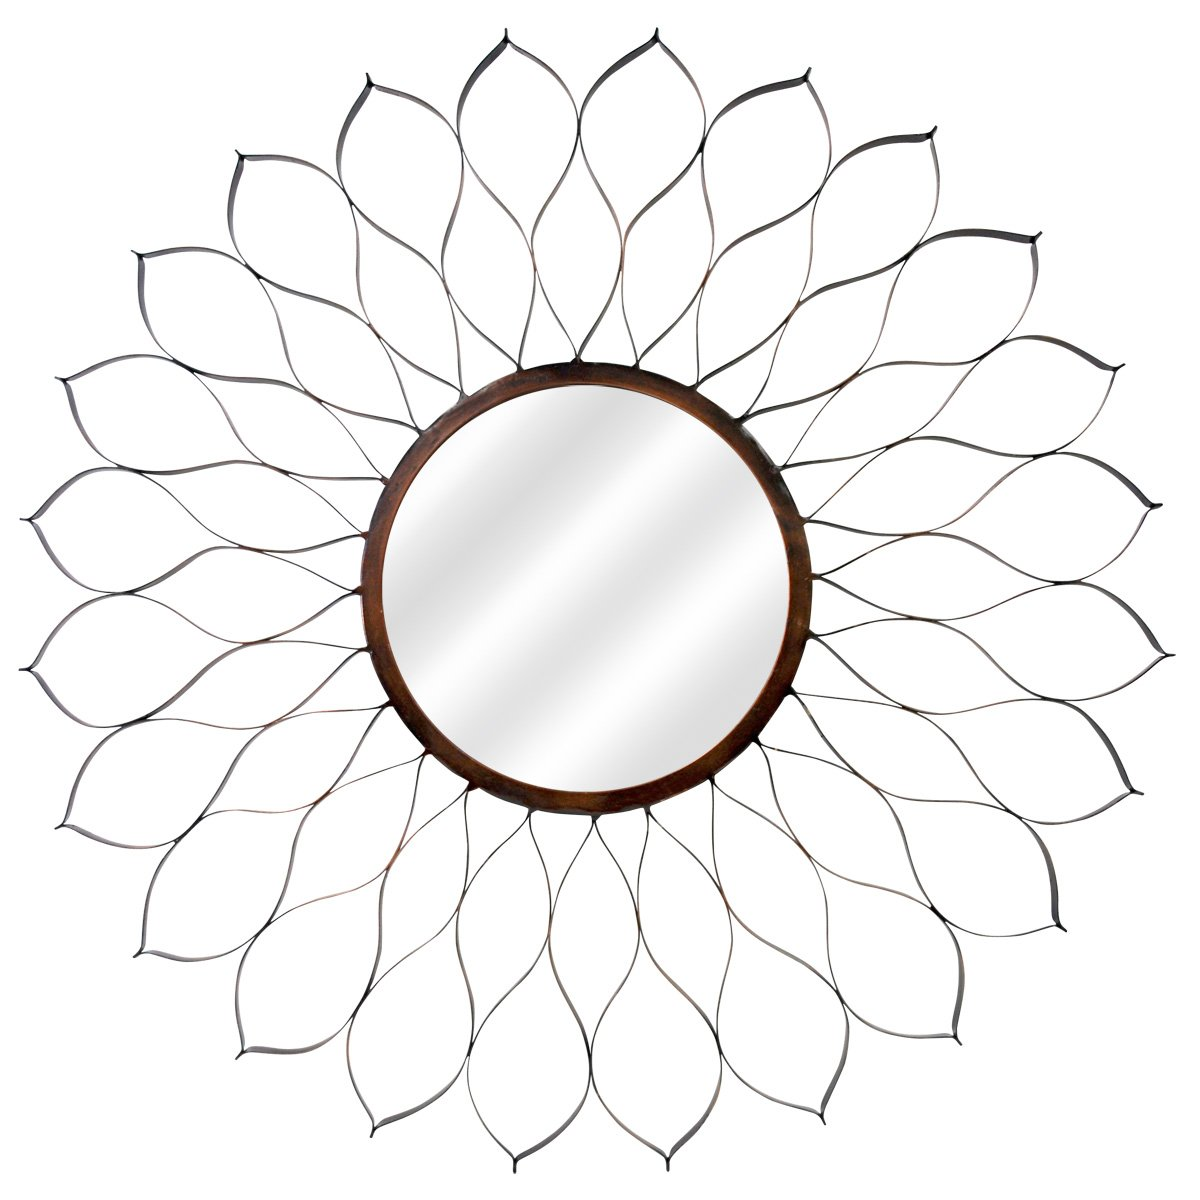 MCS 24-Inch Round Metal Dahlia Mirror Body with 9-Inch Mirror, Oil Rubbed Bronze 72465